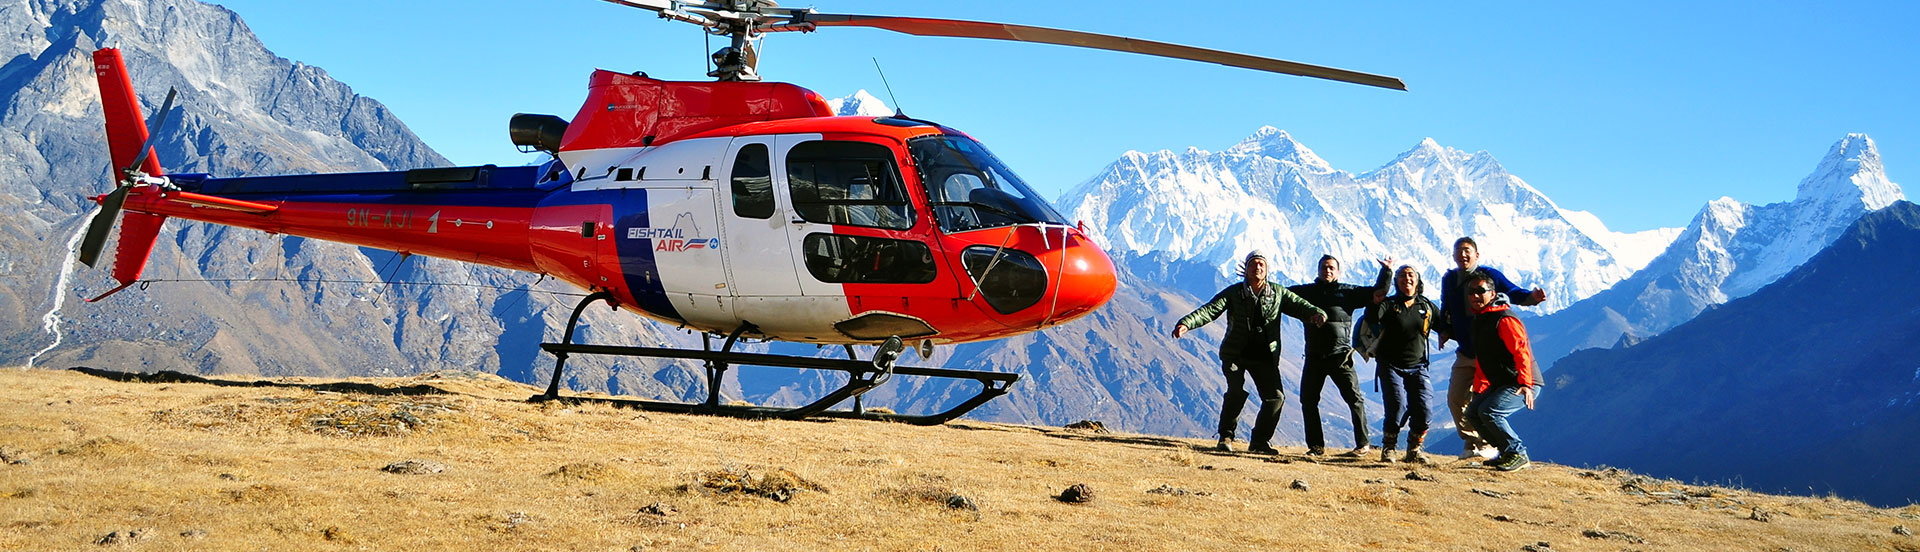 Heli Tour Photo Gallery